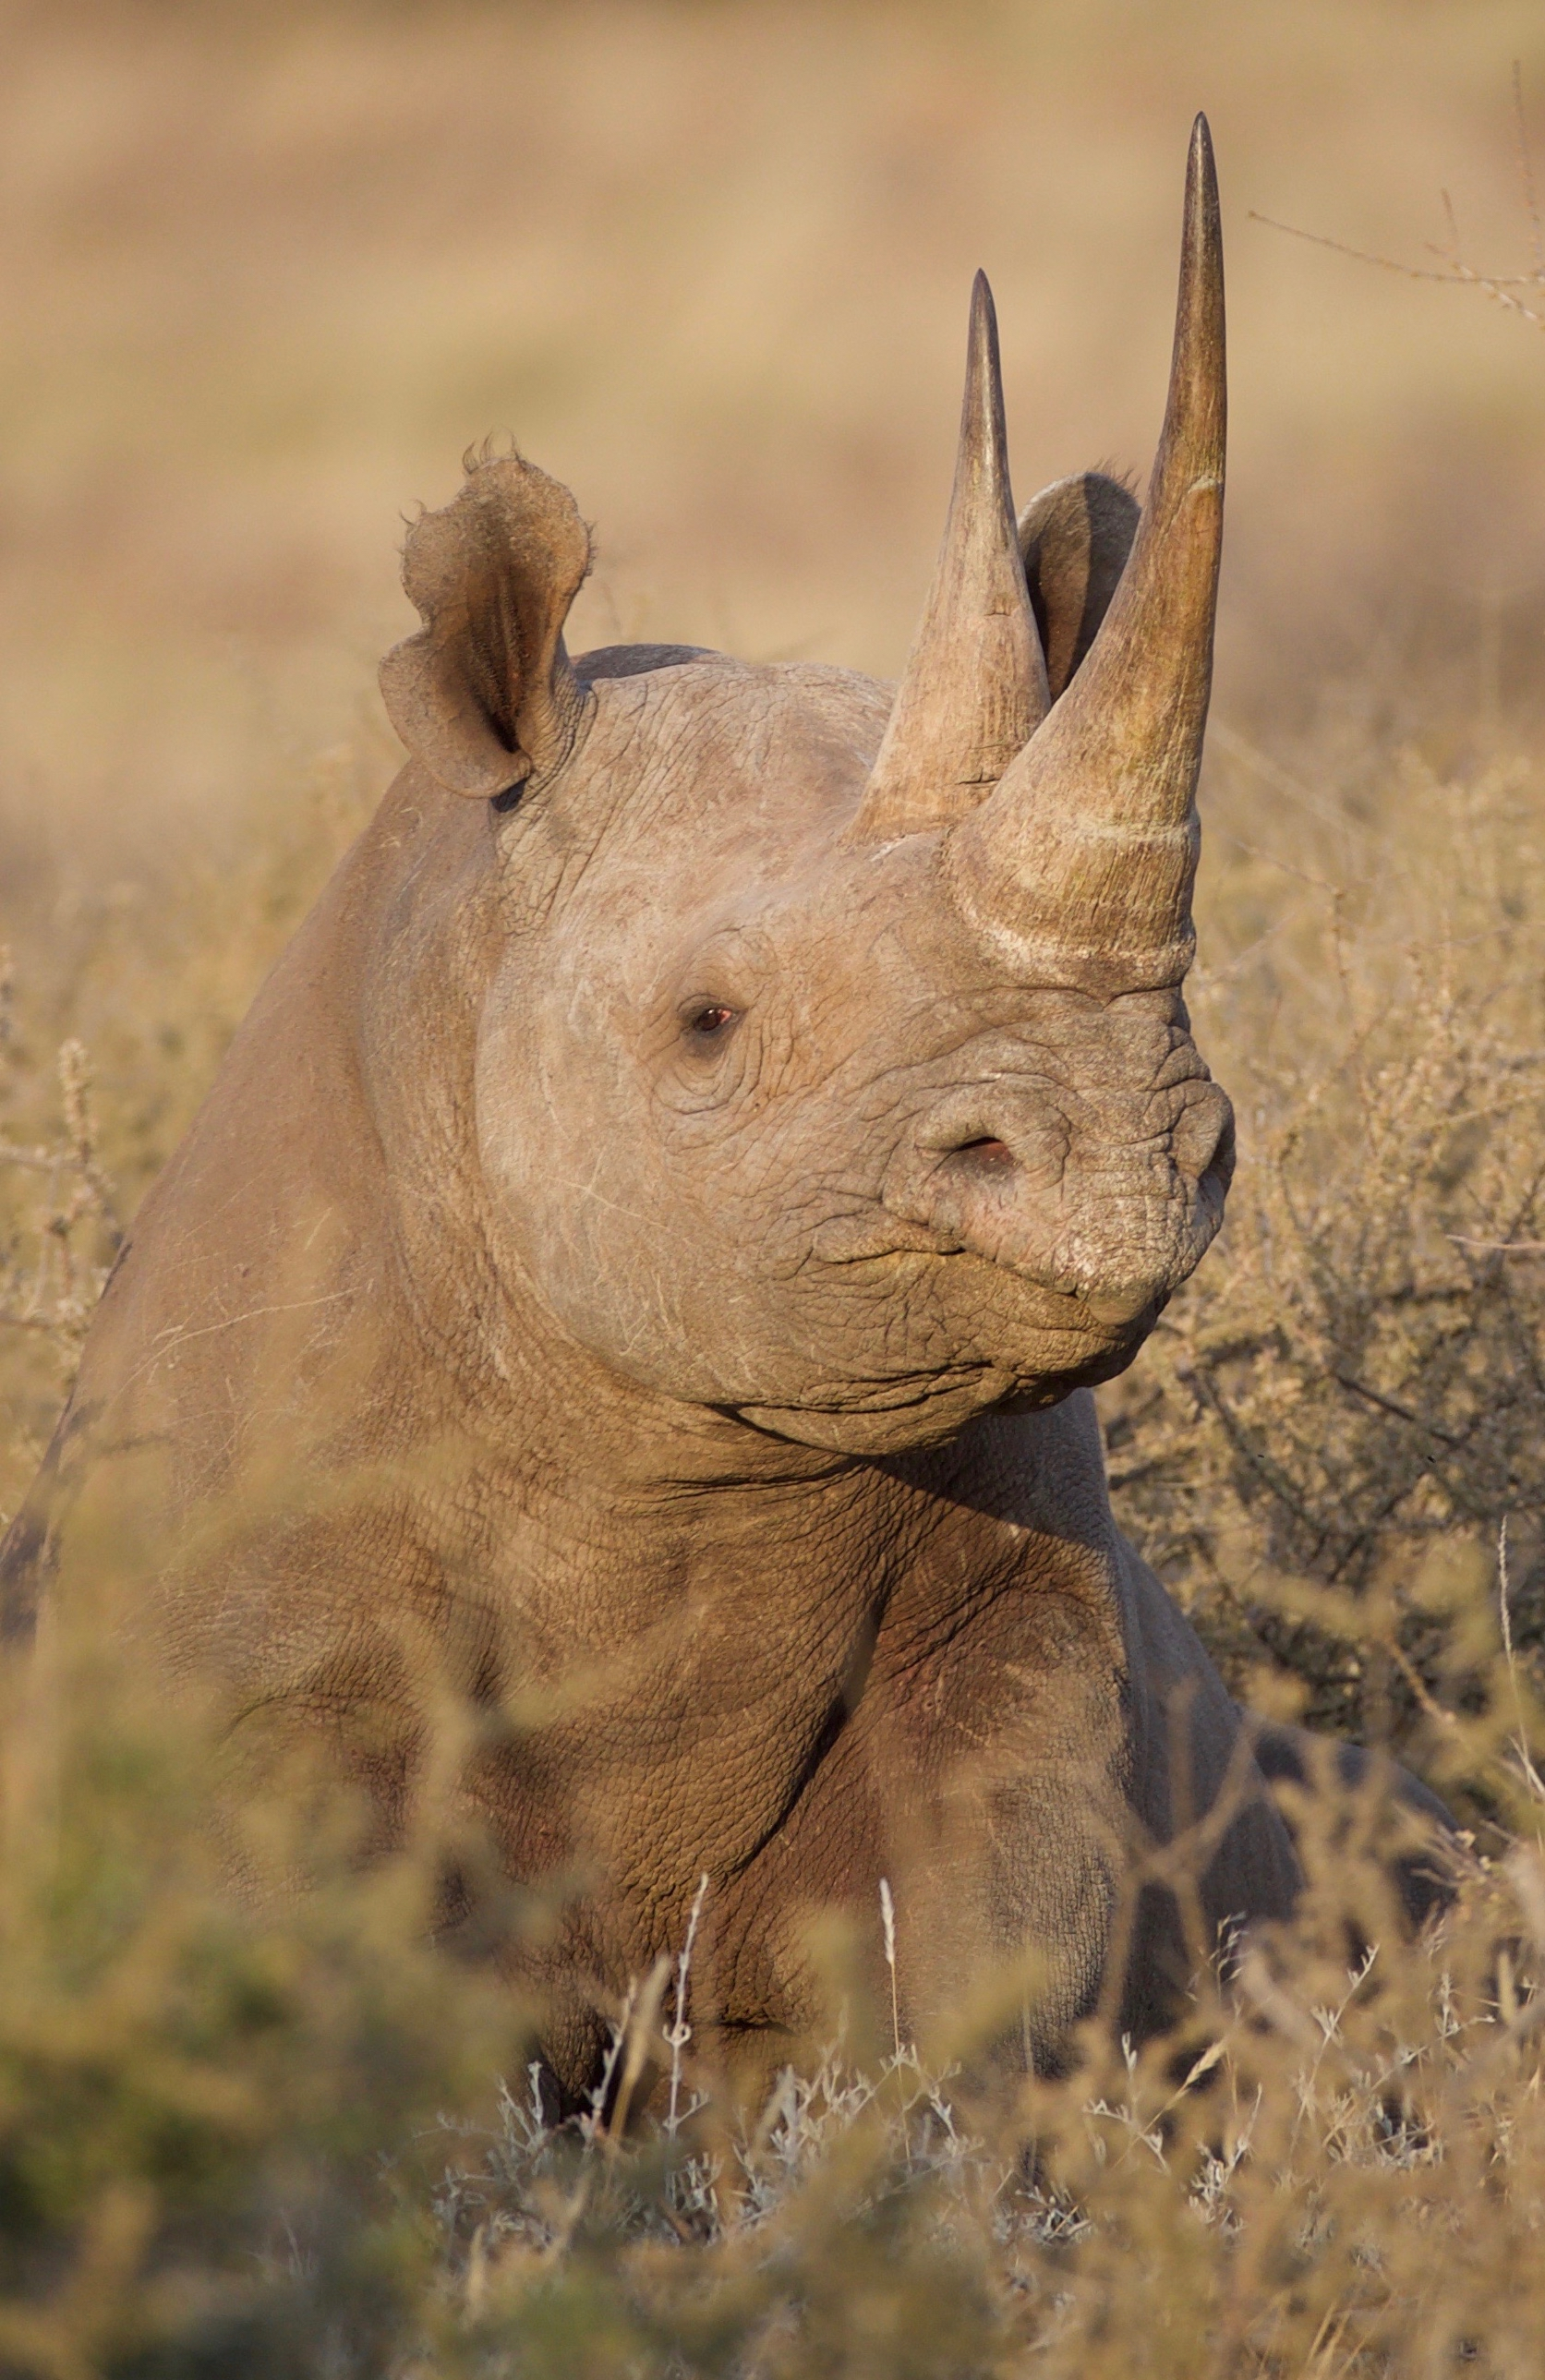 A black rhino with an intact horn